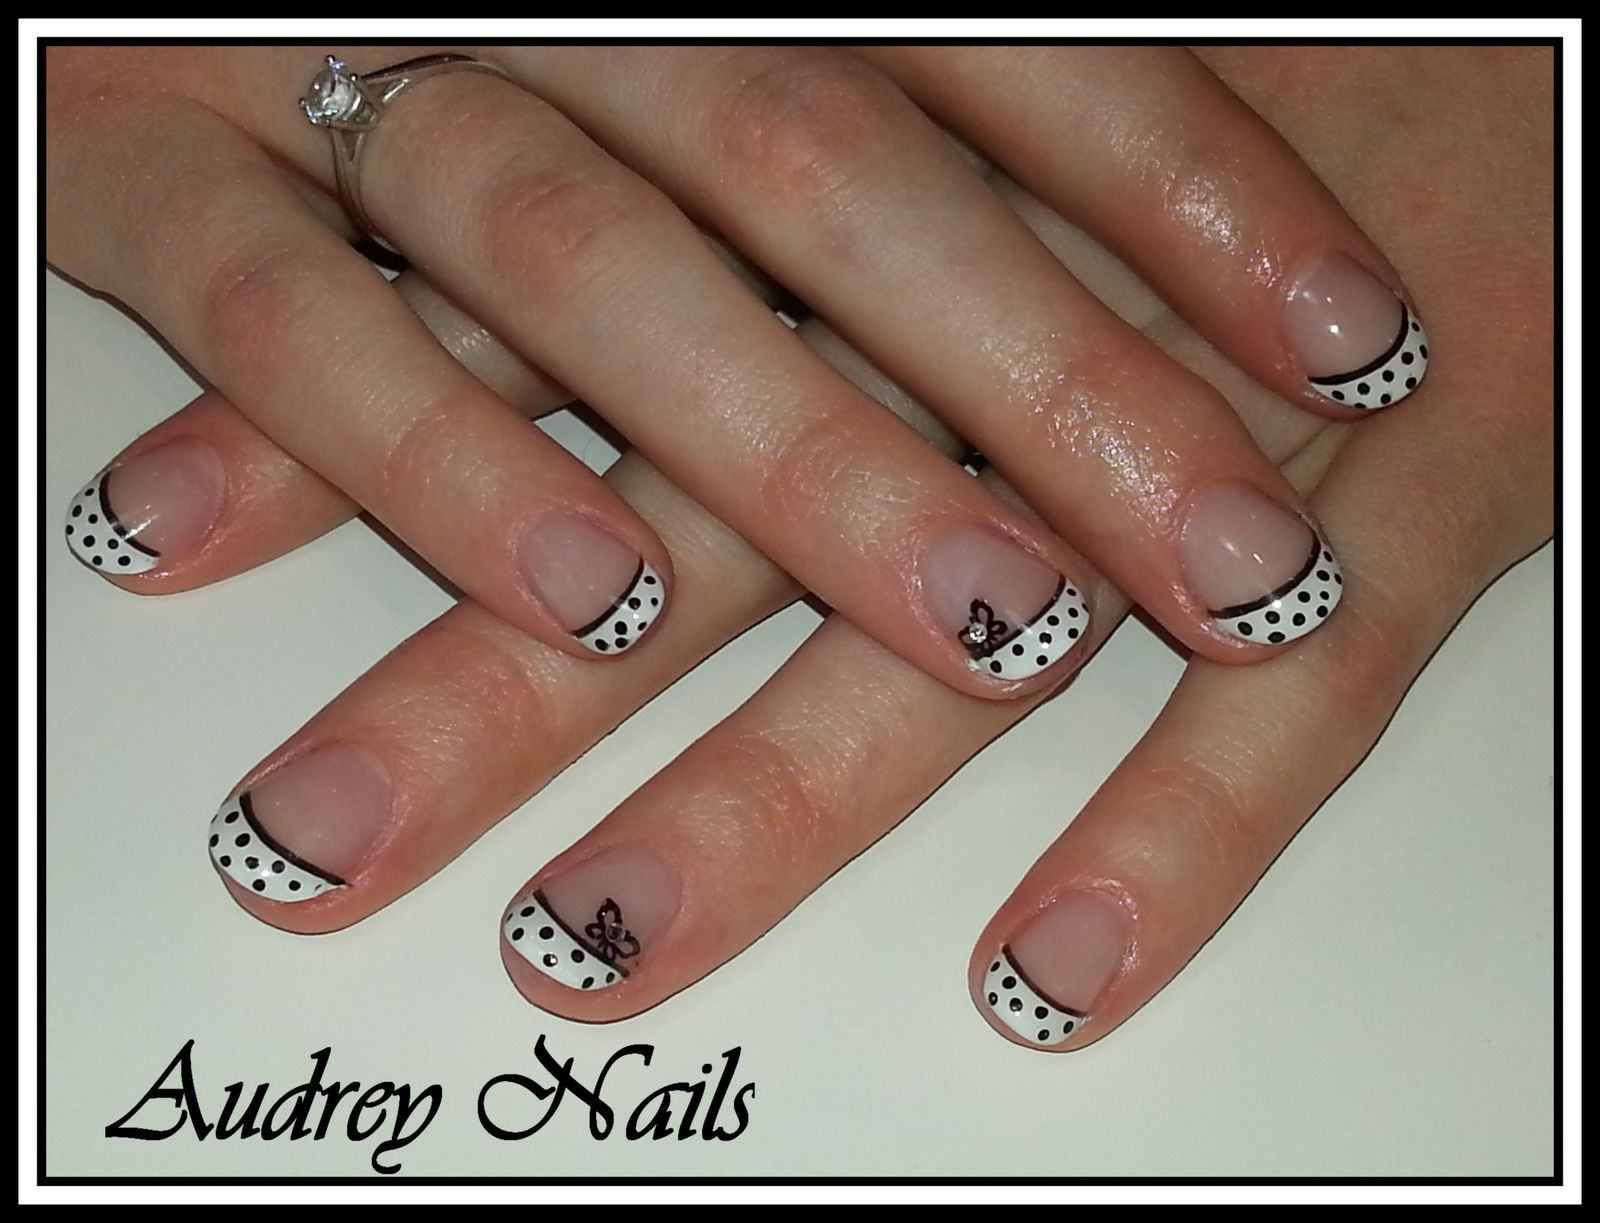 French blanche à pois noirs + liner noir et stamping papai